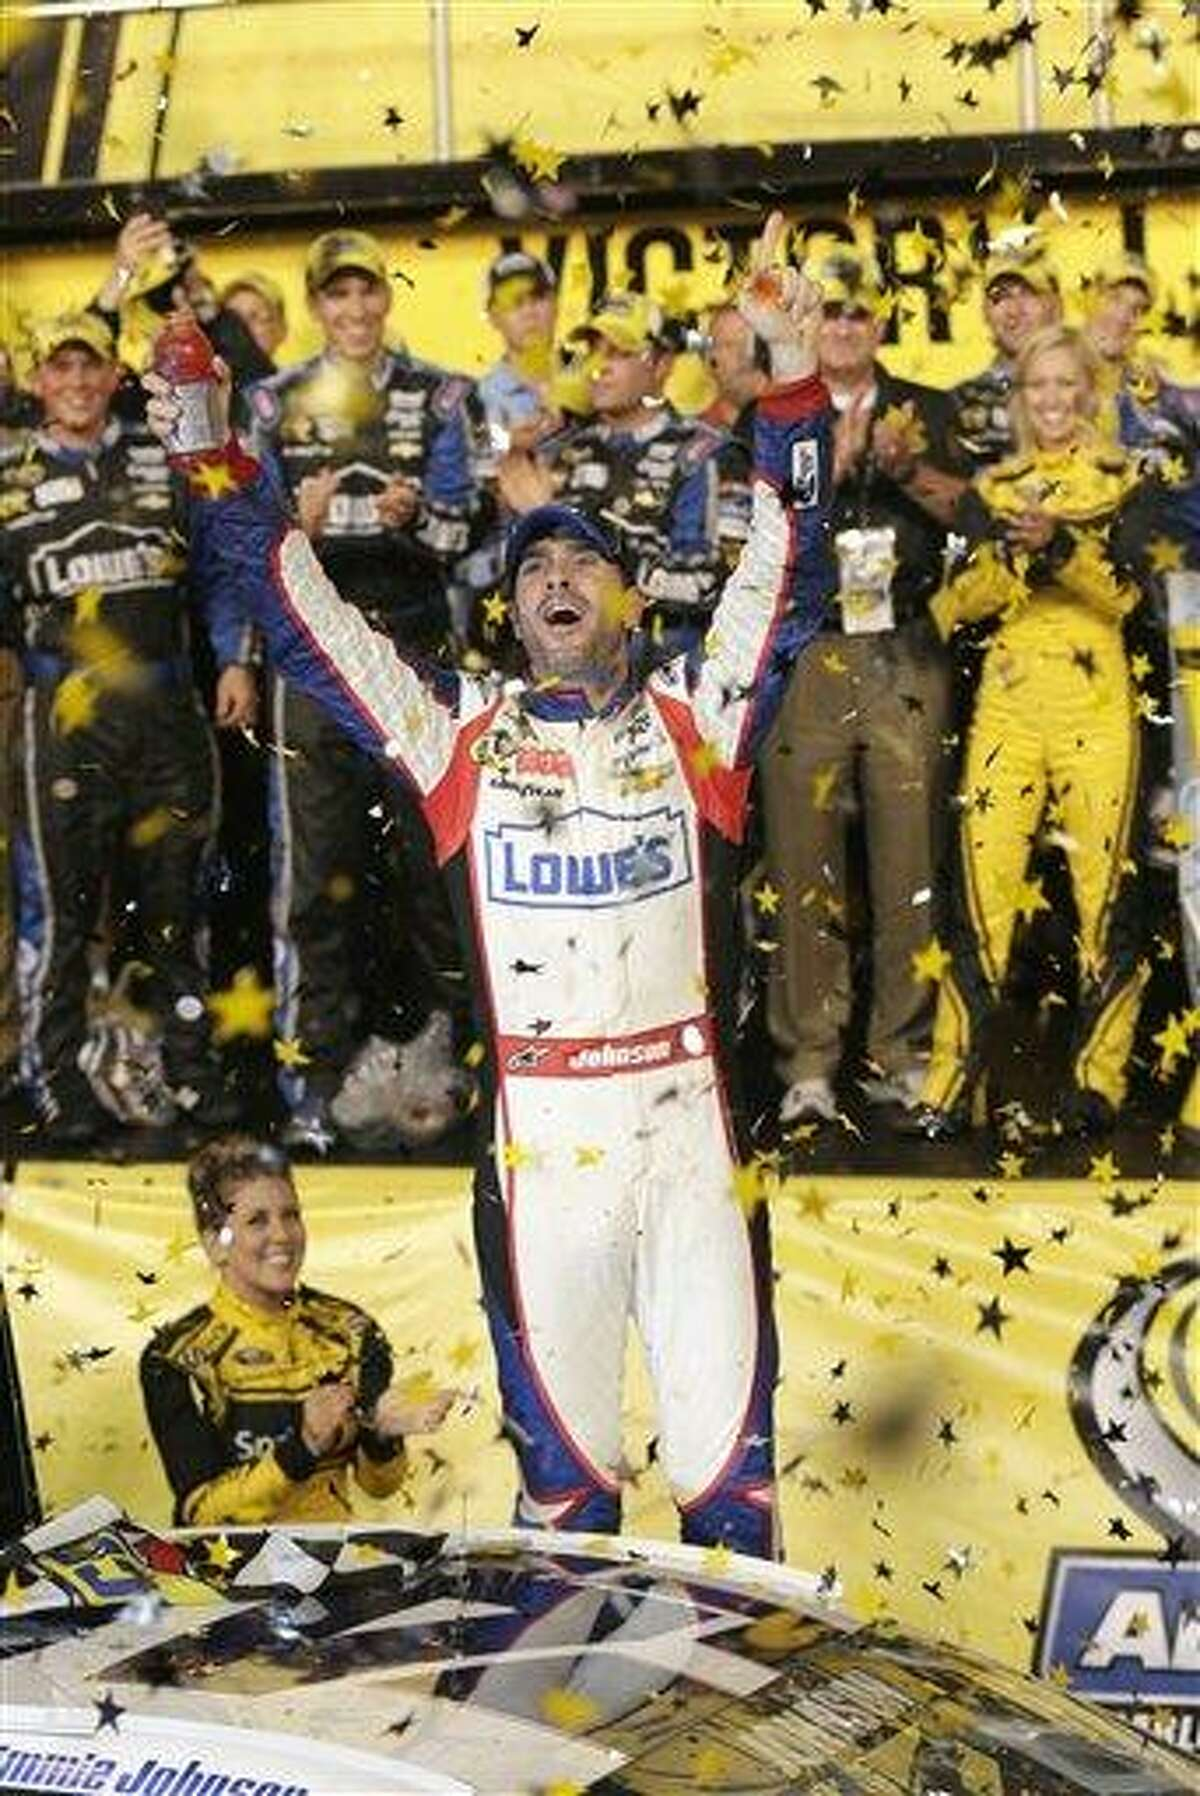 Jimmie Johnson celebrates after winning the NASCAR All-Star auto race at Charlotte Motor Speedway in Concord, N.C., Saturday, May 18, 2013. (AP Photo/Chuck Burton)